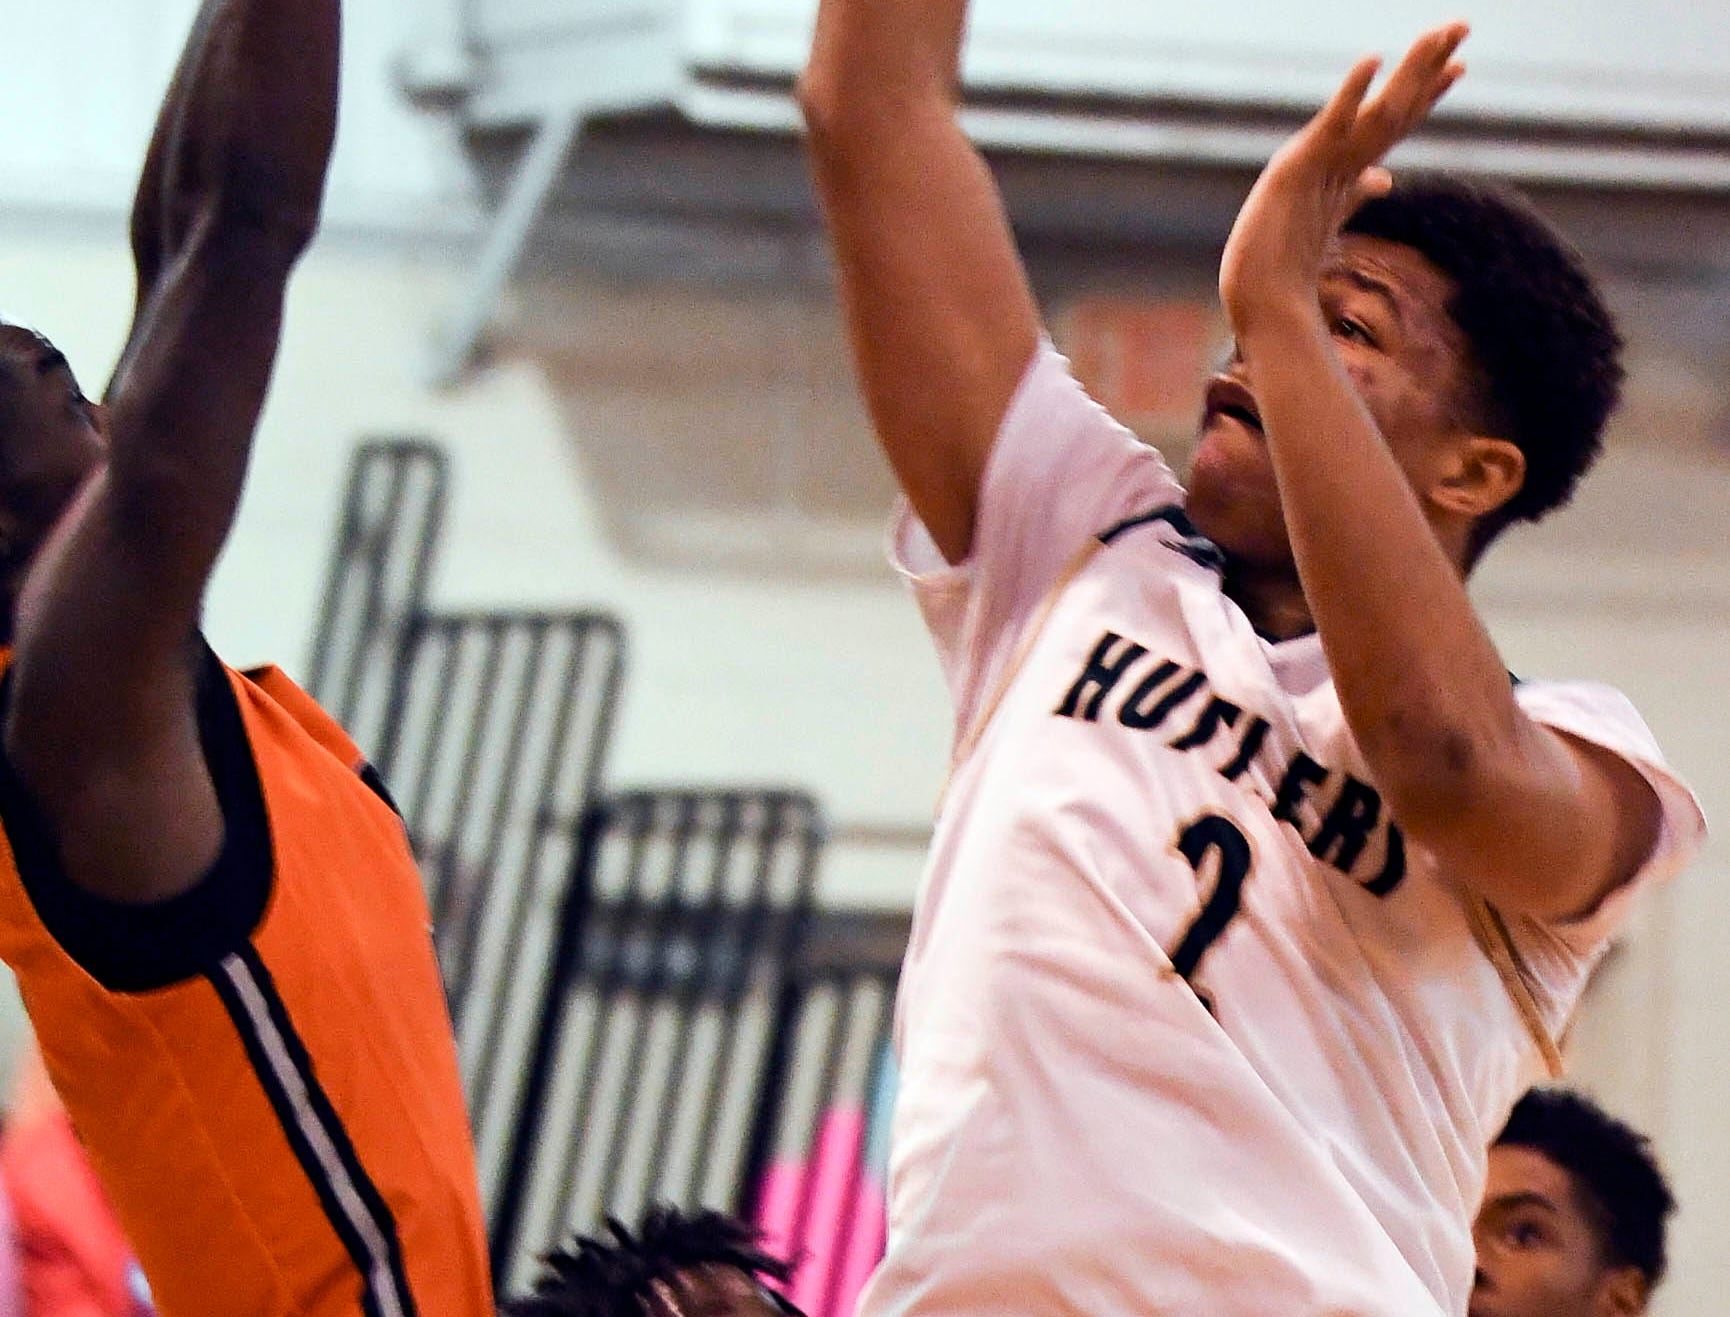 MCC's CJ Livingston takes a shot over the defense of Samarion Bryant of Cocoa during Friday's District 7-5A boys basketball championship game at Holy Trinity in Melbourne